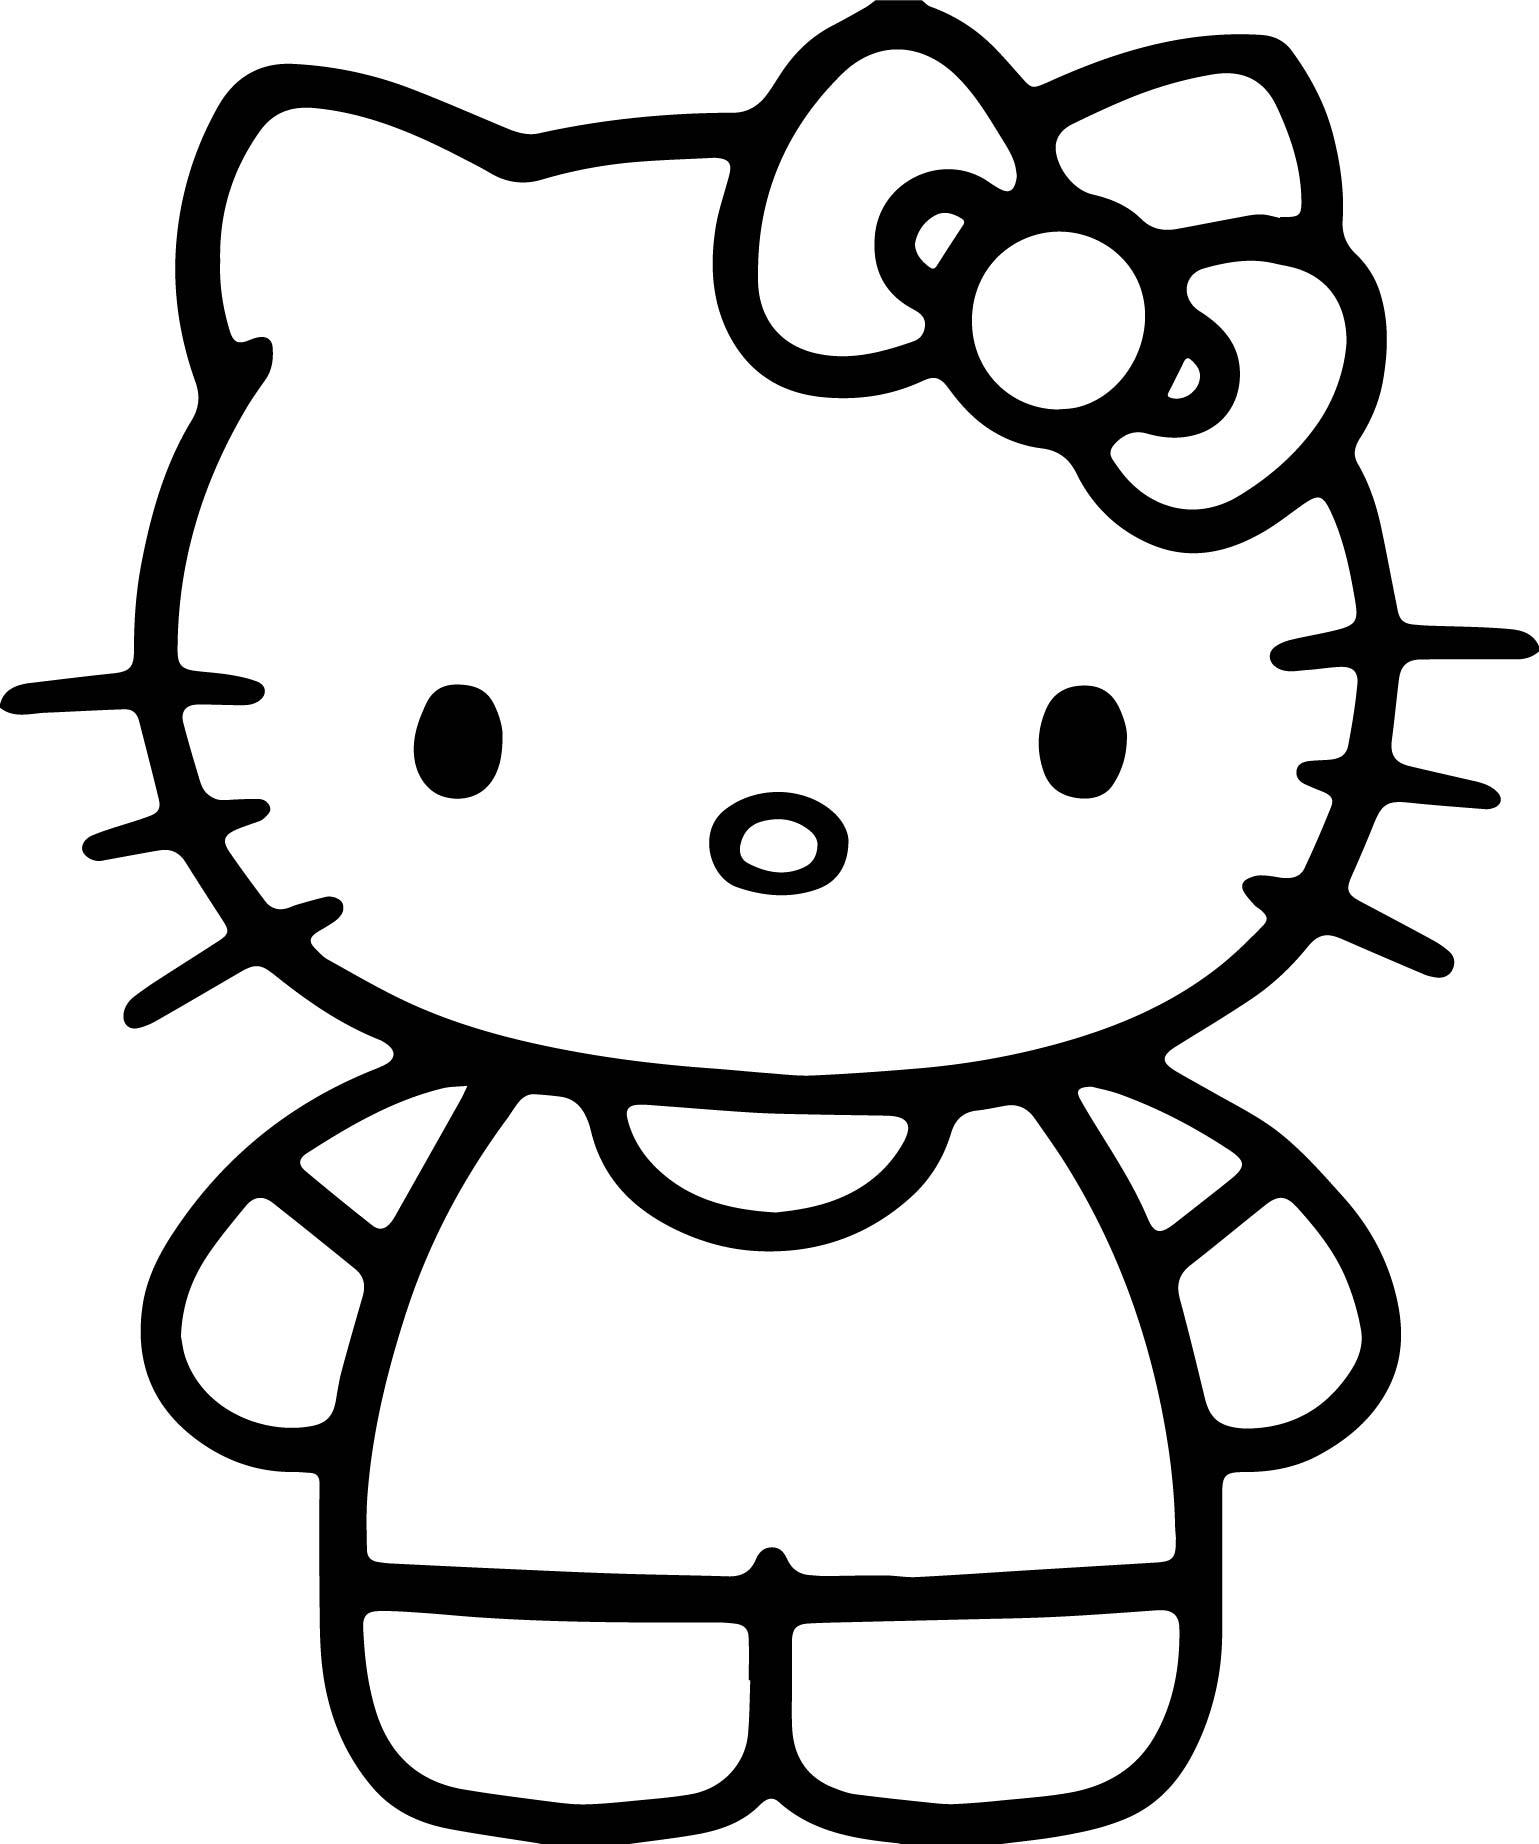 3 year old printable coloring pages coloring pages for 2 to 3 year old kids download them or 3 coloring pages old year printable